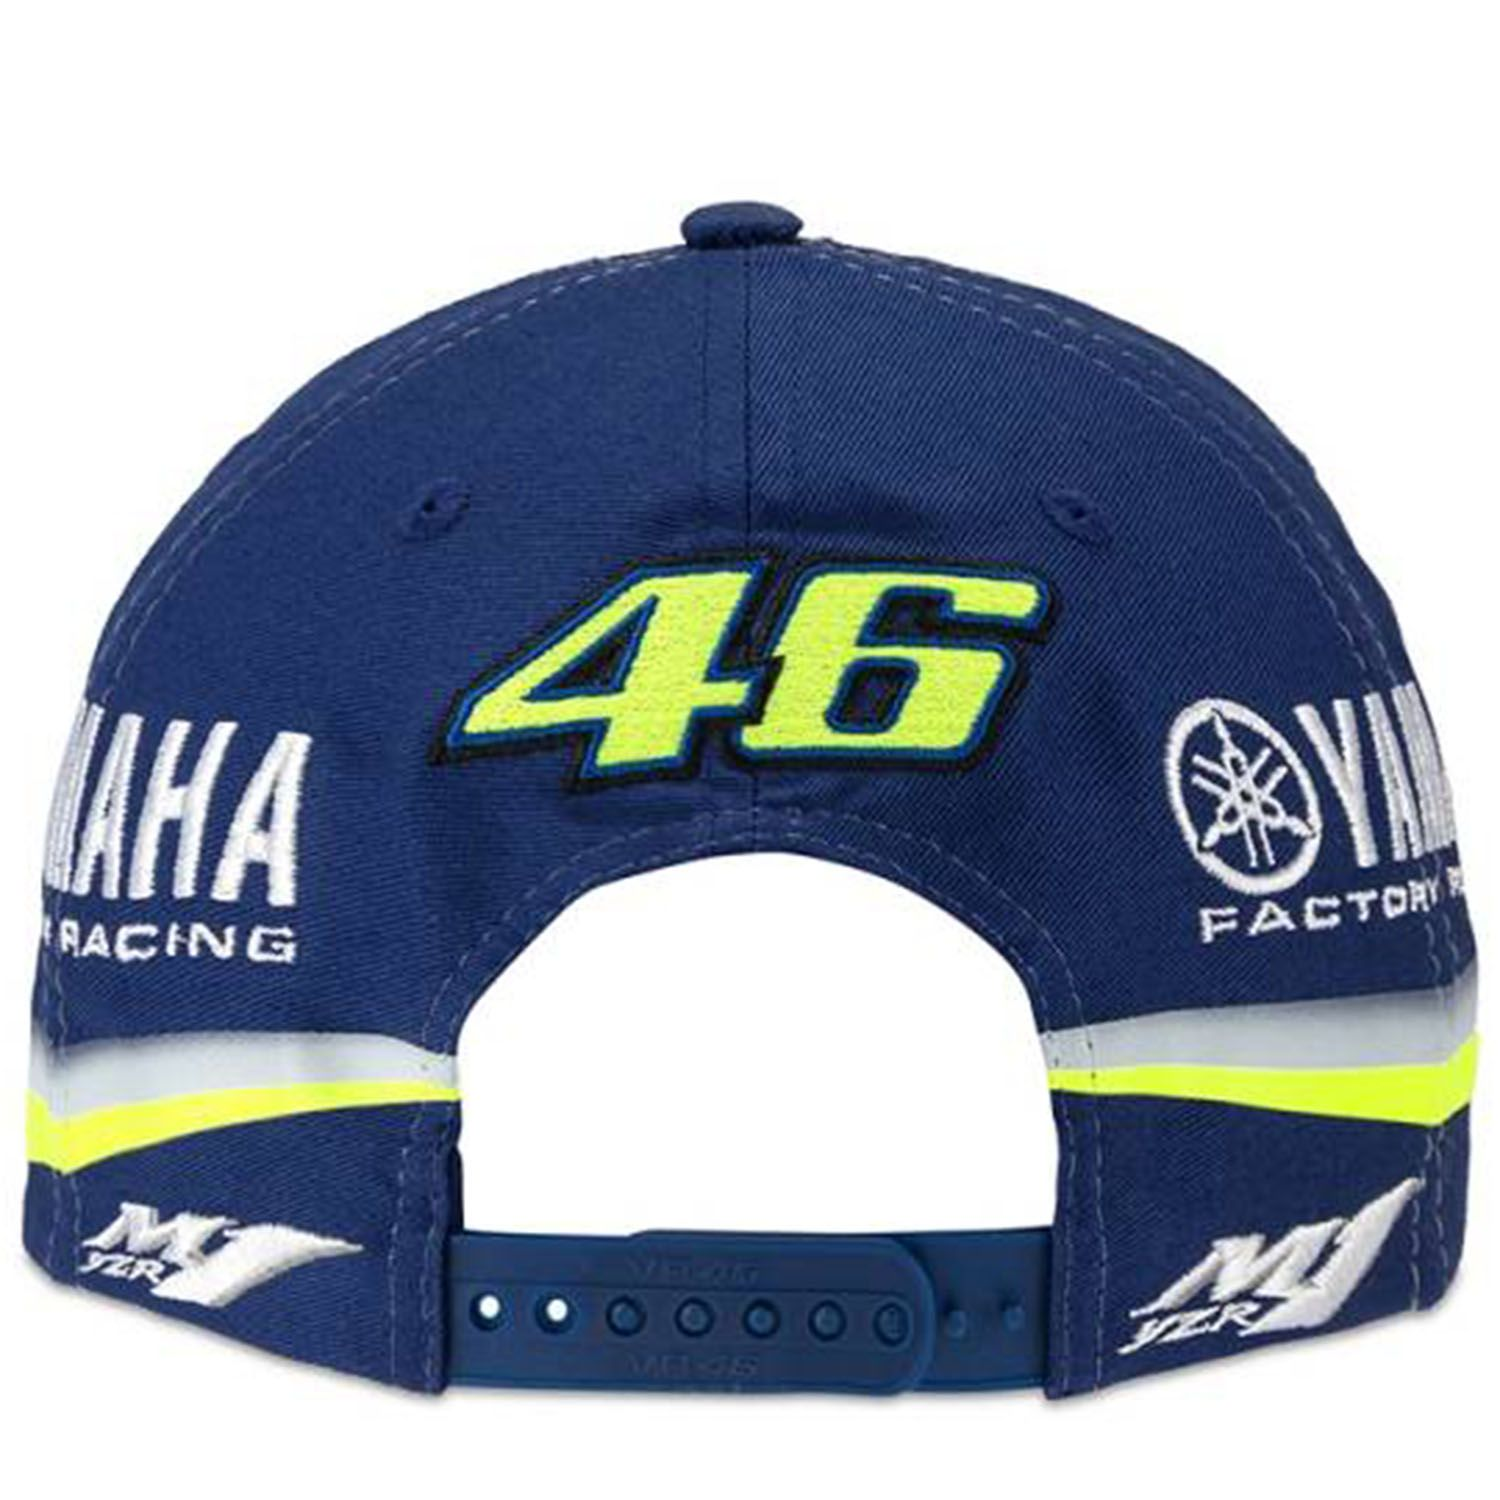 valentino rossi casquette vr46 moto gp m1 yamaha factory racing team ydmca313609 officiel 2018. Black Bedroom Furniture Sets. Home Design Ideas